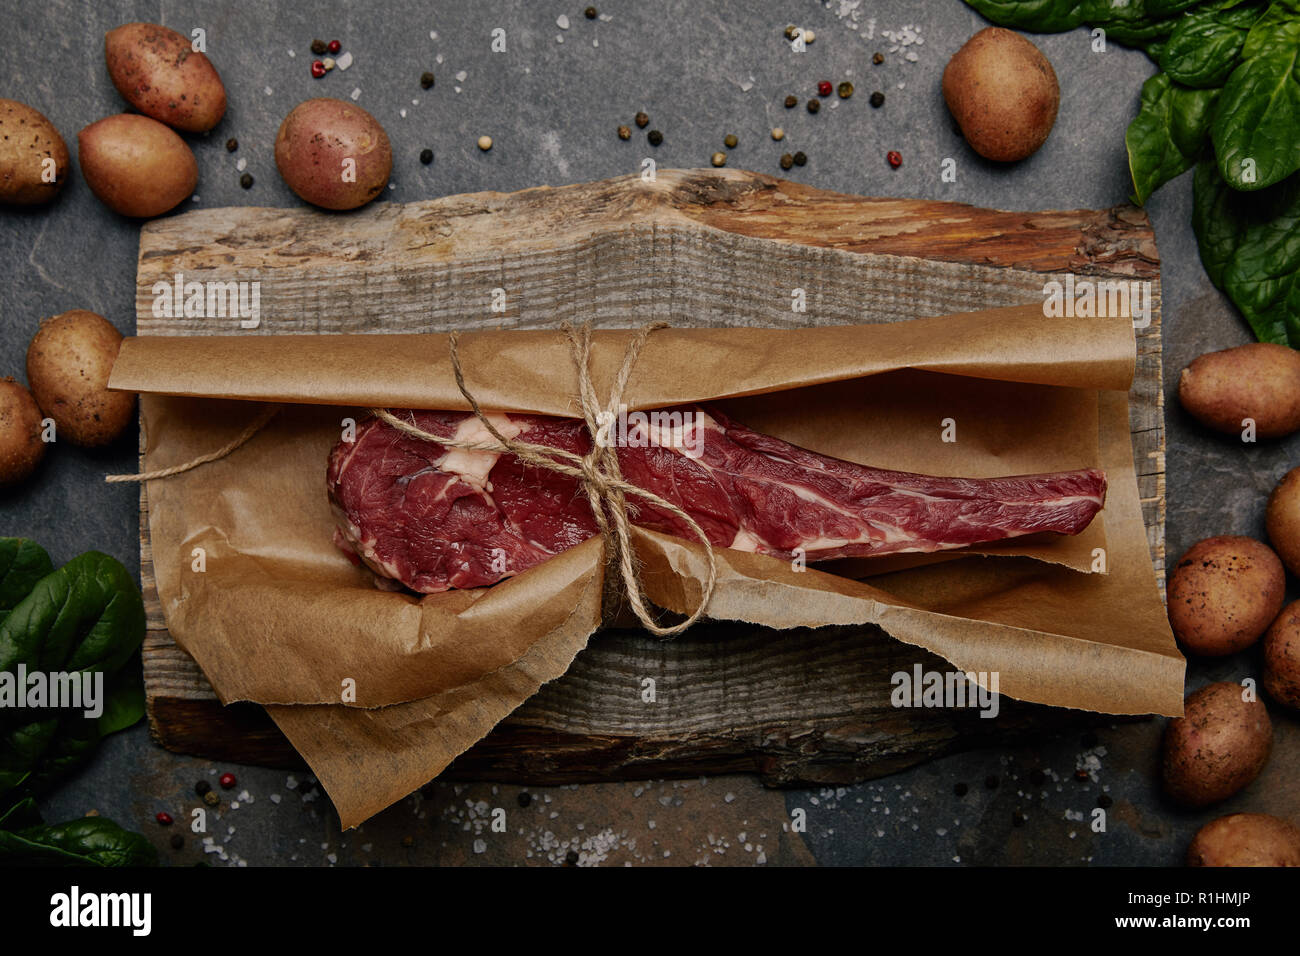 raw rib eye steak wrapped in baking paper on wooden board with spices and potatoes - Stock Image